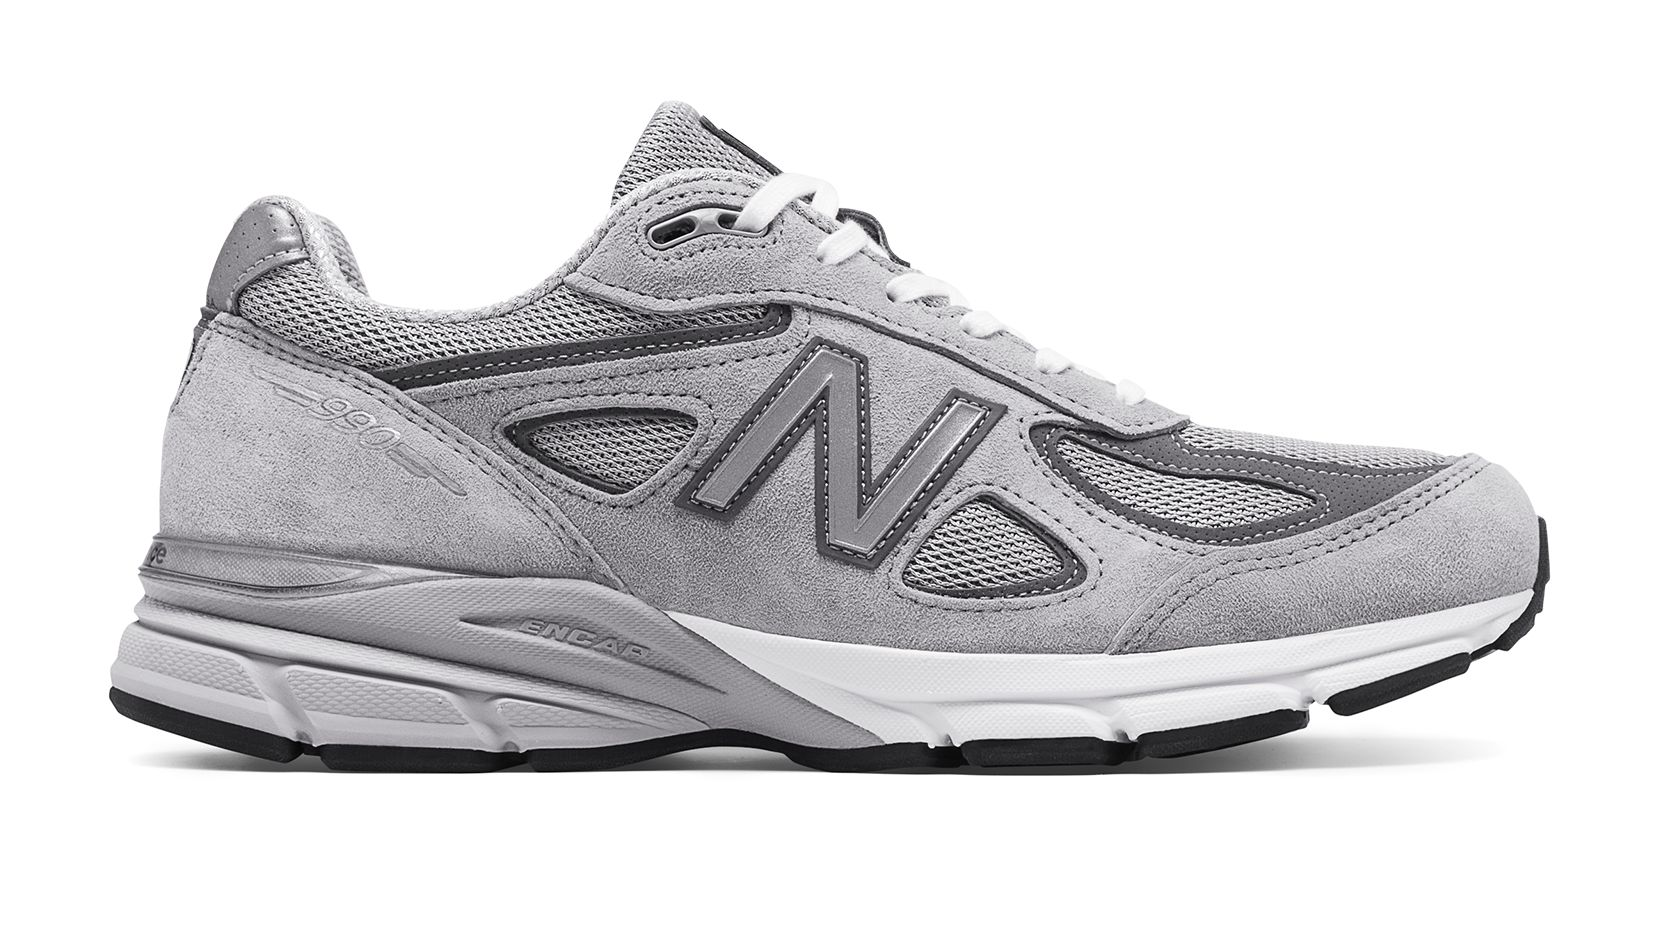 New Balance 990v4 Made in US, Grey with Castlerock